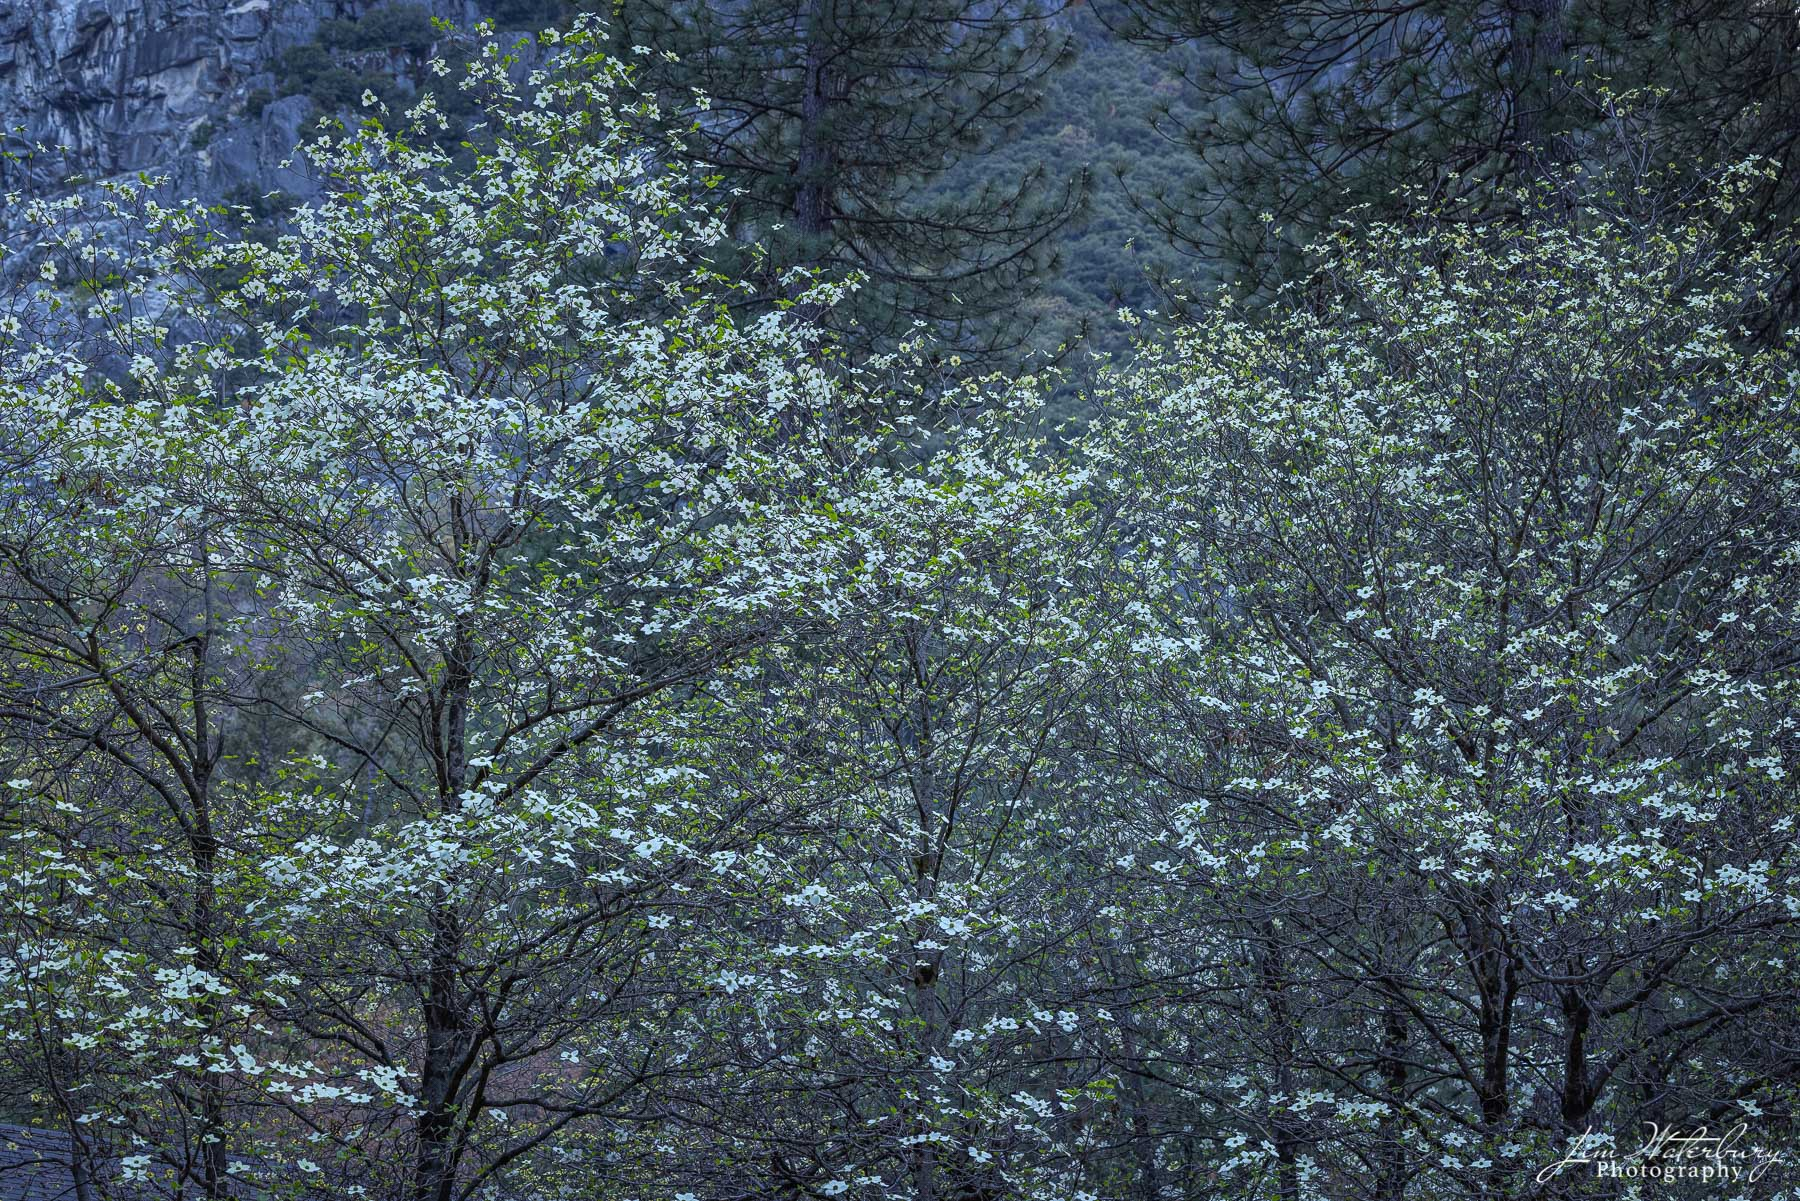 Dogwood trees at the Housekeeping Camp in Yosemite, set against the shadowed cliffs behind.